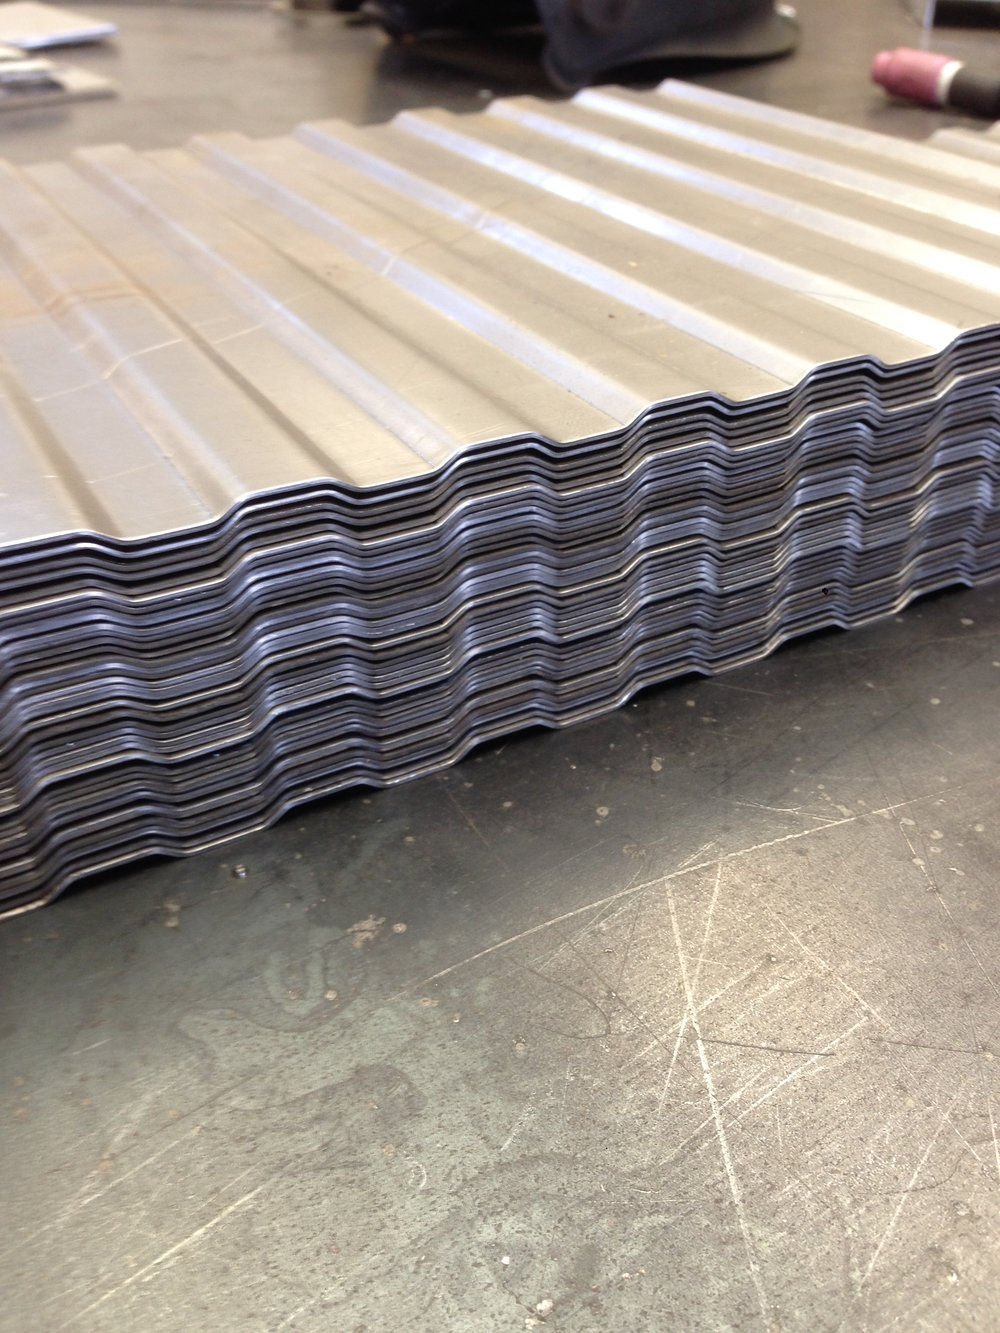 HYDRAYLICALLY PRESSED STEEL USING CUSTOM MADE TOOLING